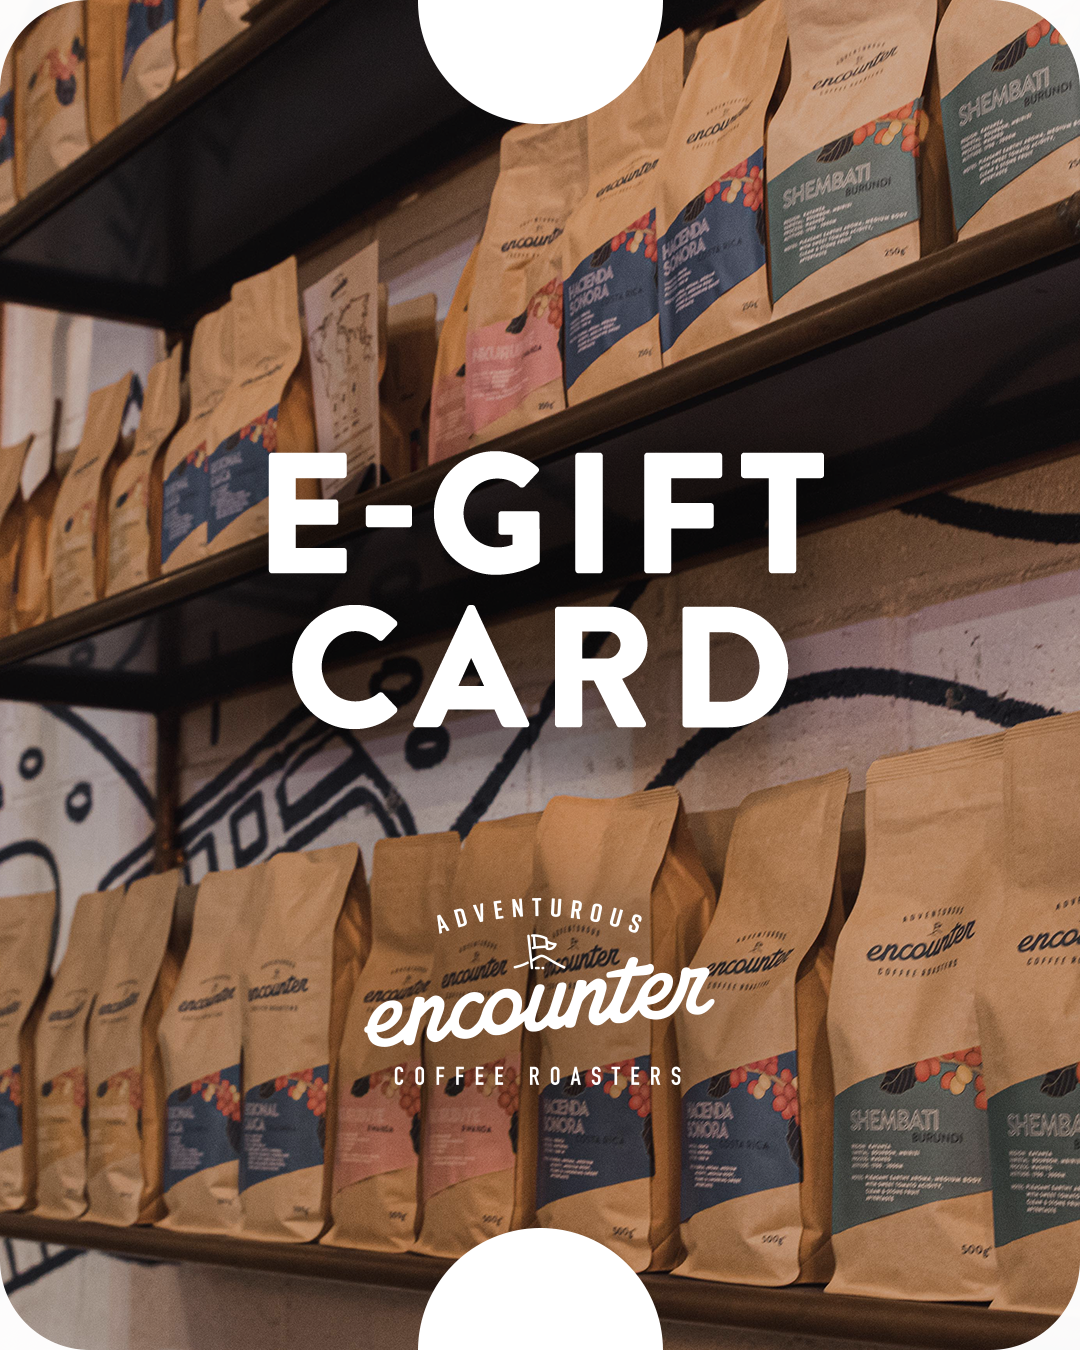 E-Gift Card for Encounter Coffee Roasters